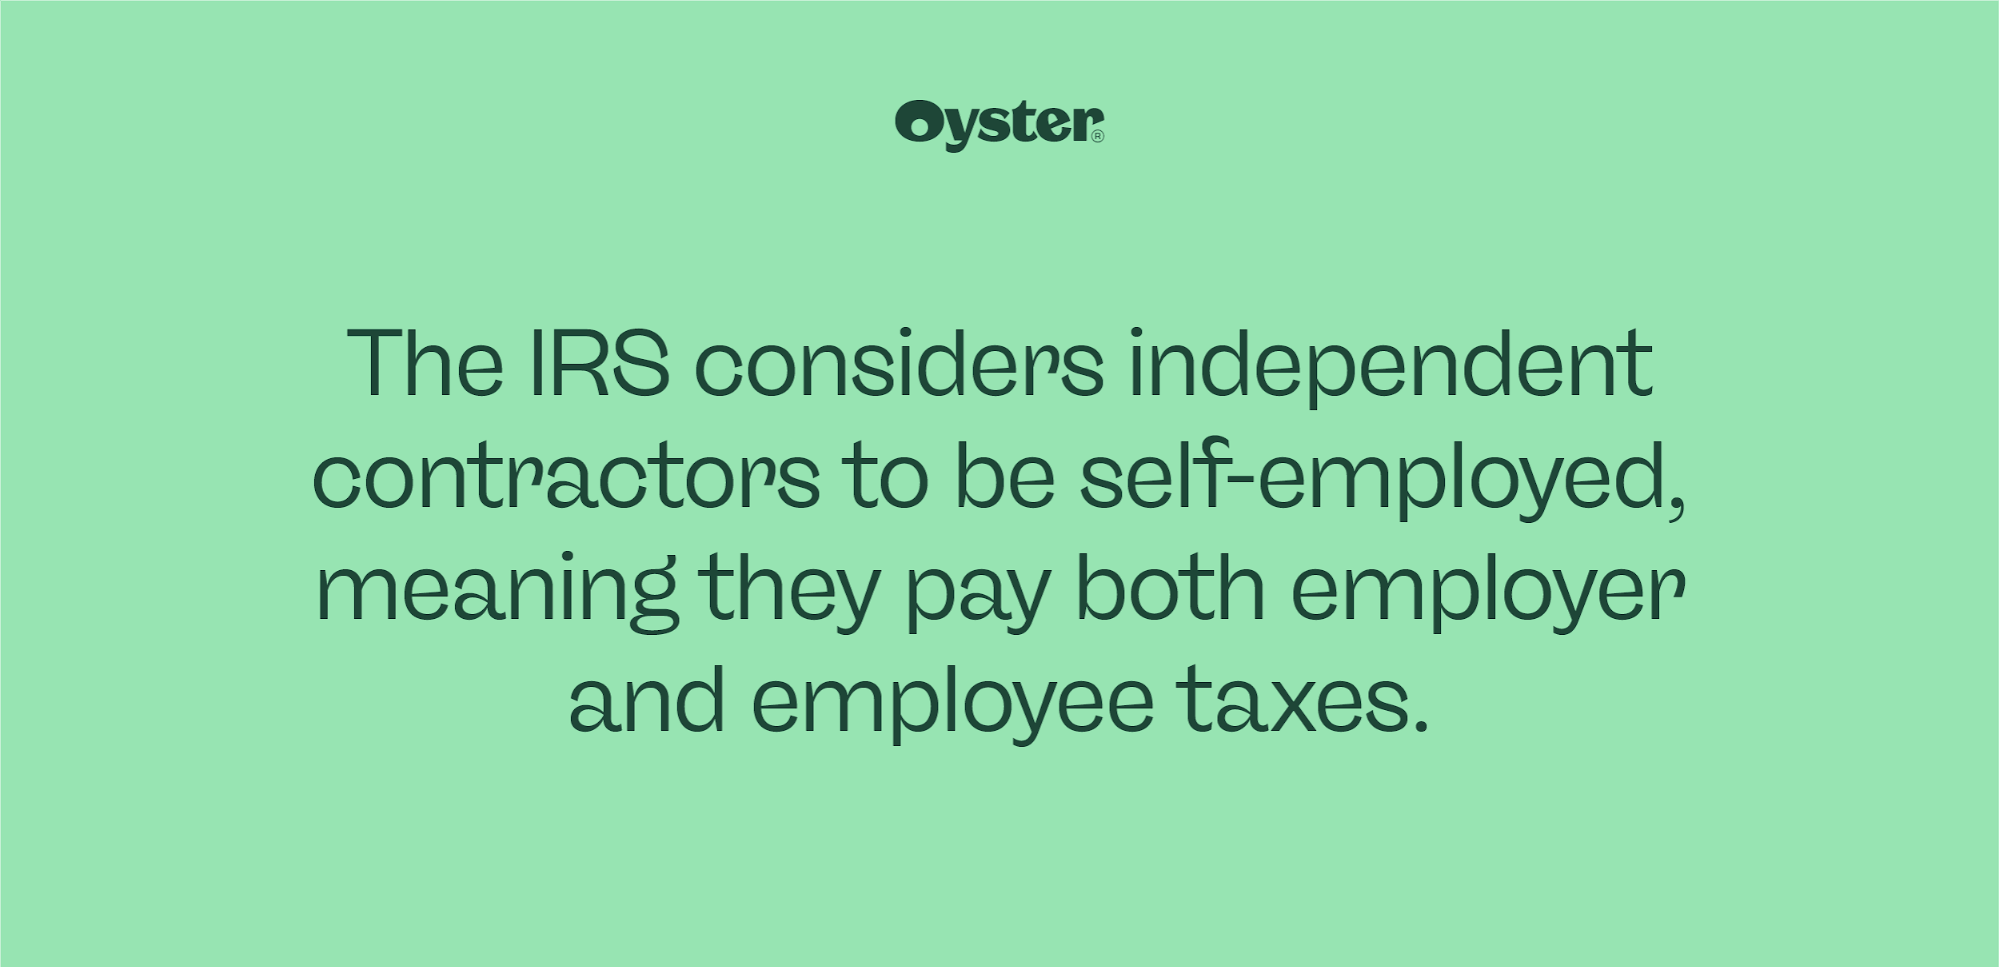 Quote that says the IRS considers independent contractors to be self-employed, meaning they both pay both employer and employee taxes